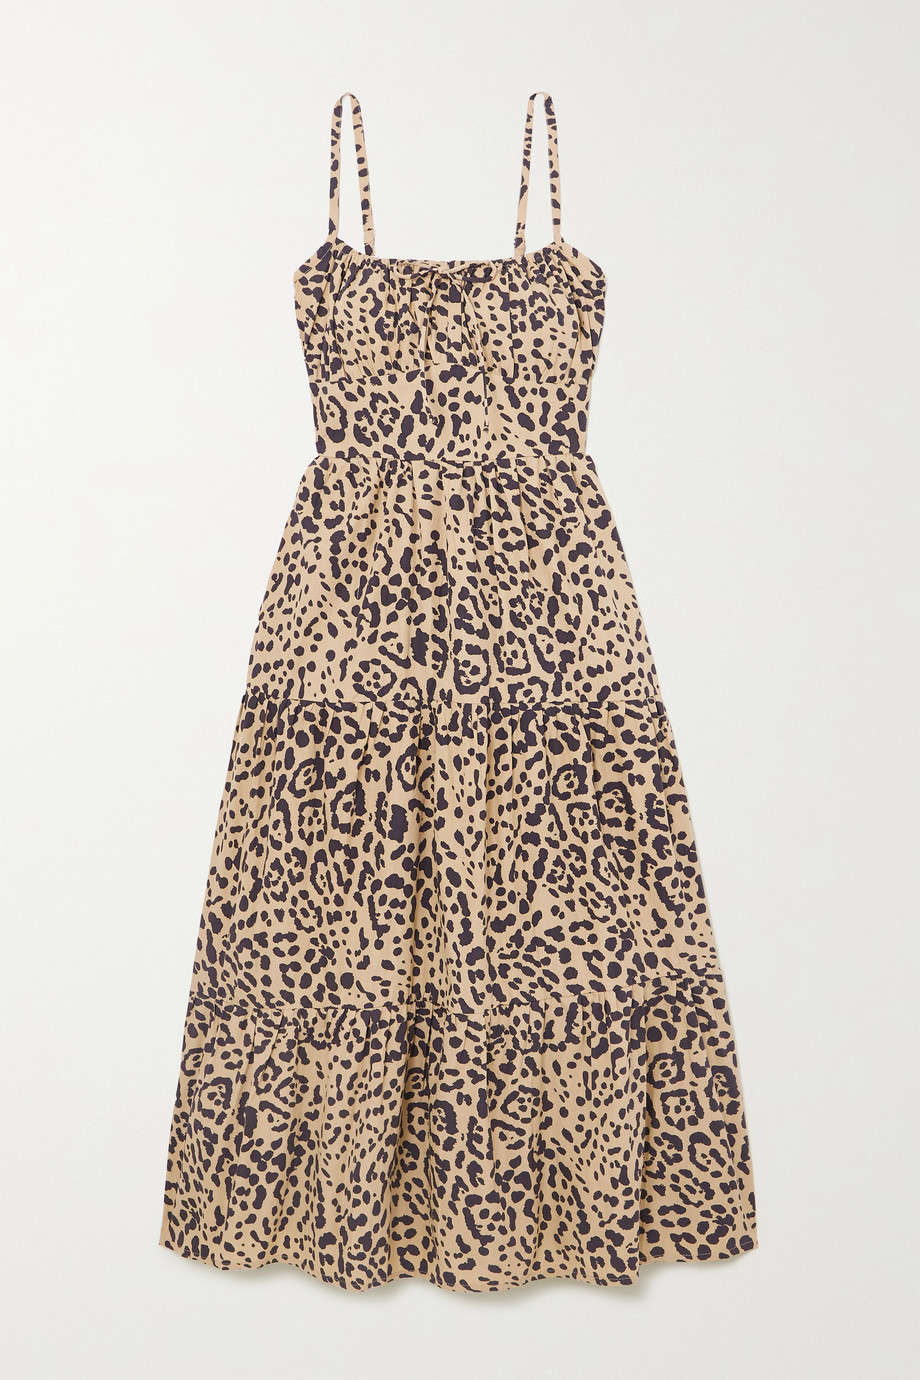 FAITHFULL THE BRAND + NET SUSTAIN Alexia leopard-print gathered cotton-poplin midi dress